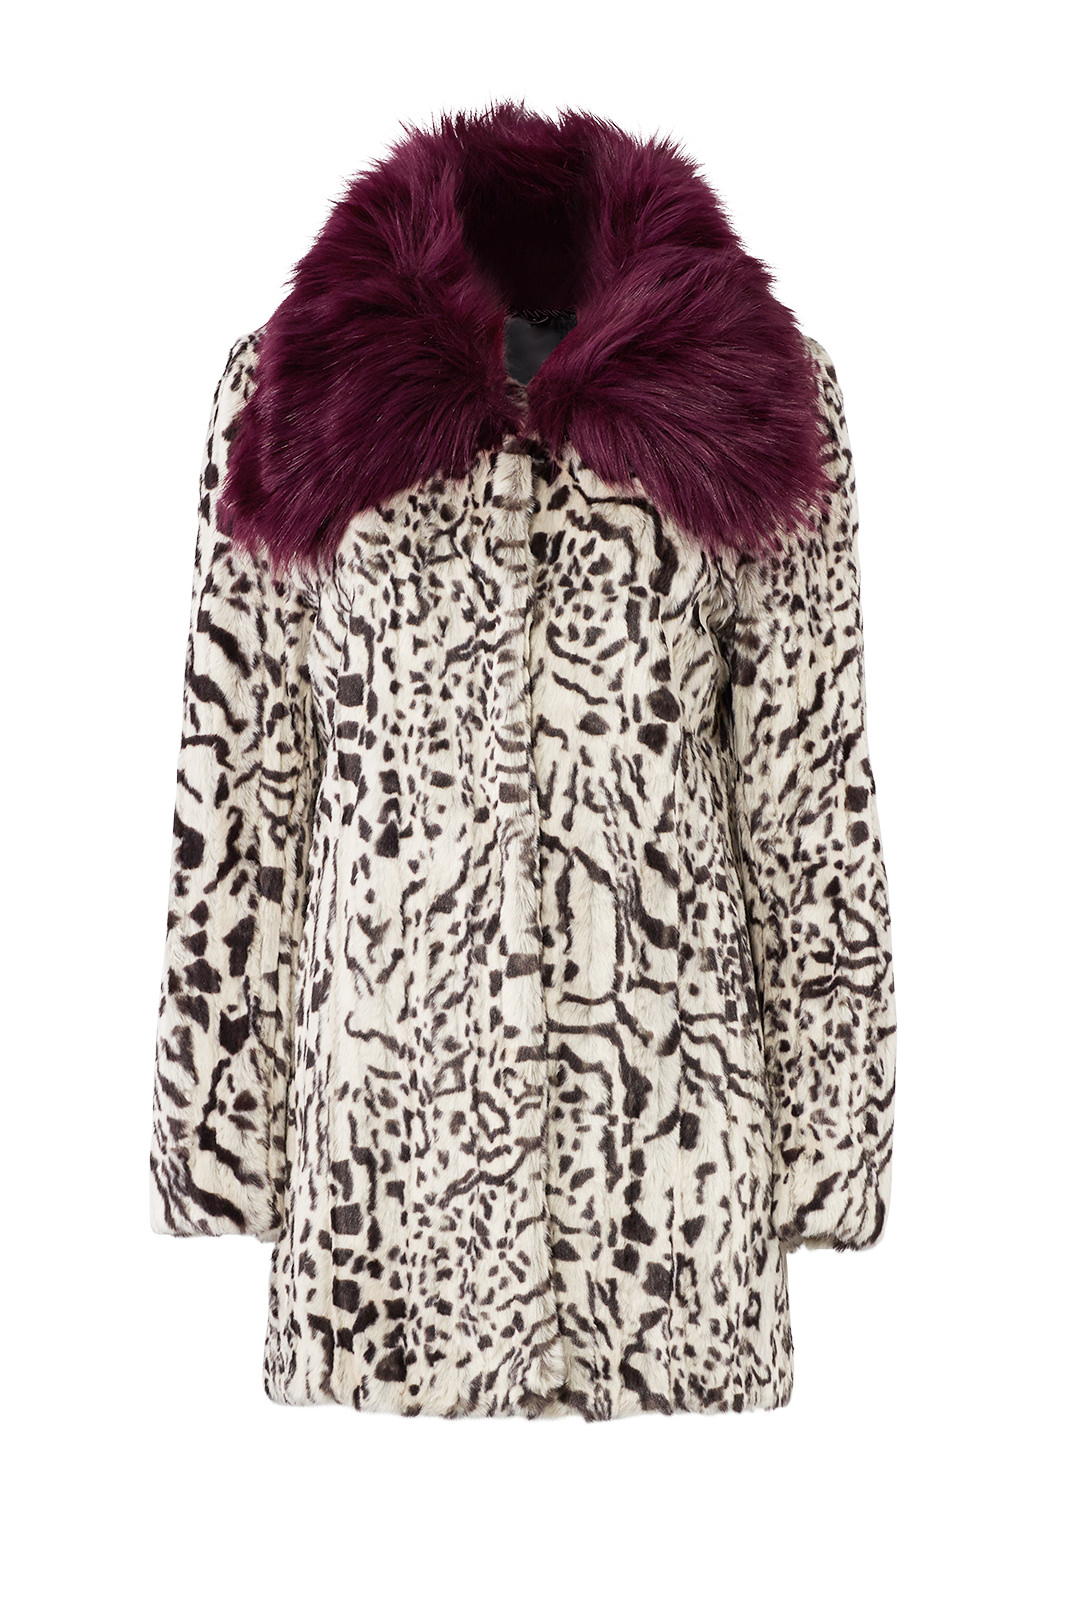 Urban Jungle Coat by Unreal Fur from Rent the Runway